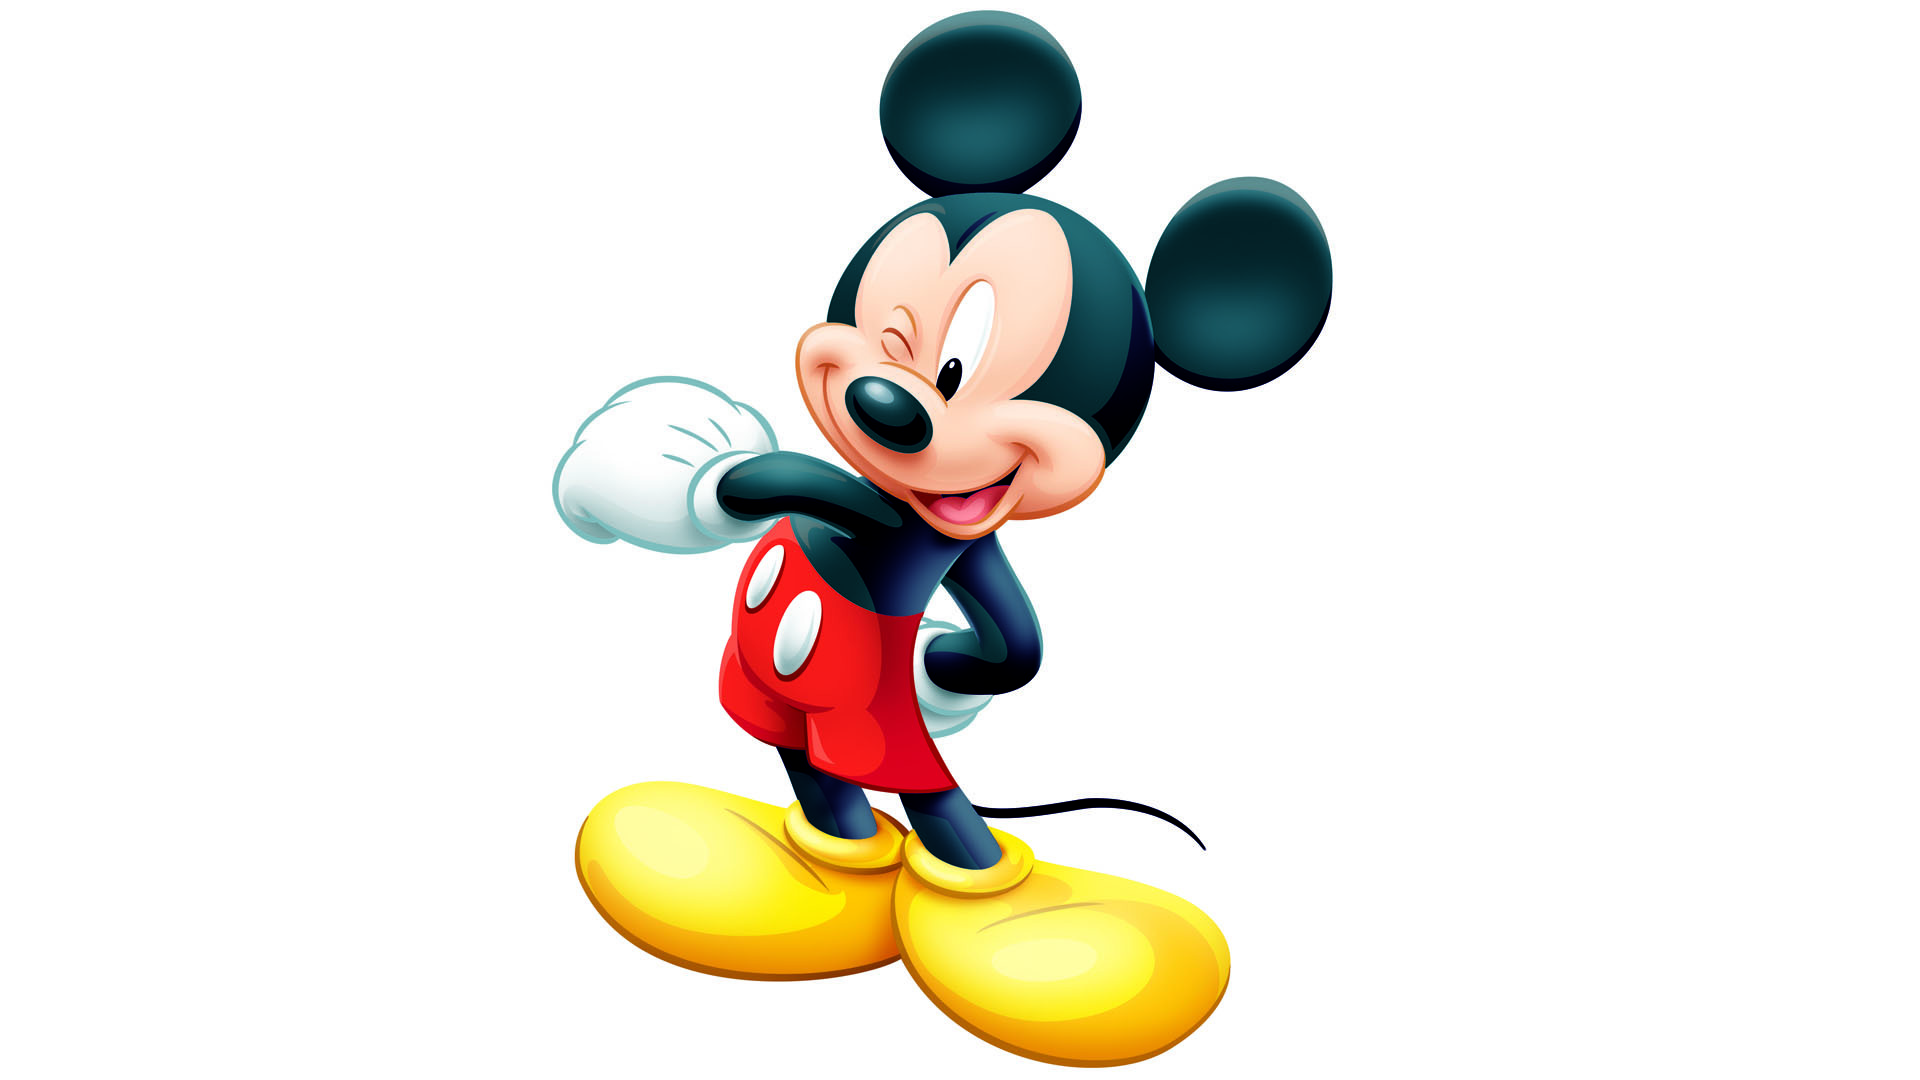 mickey mouse wallpapers images photos pictures backgrounds